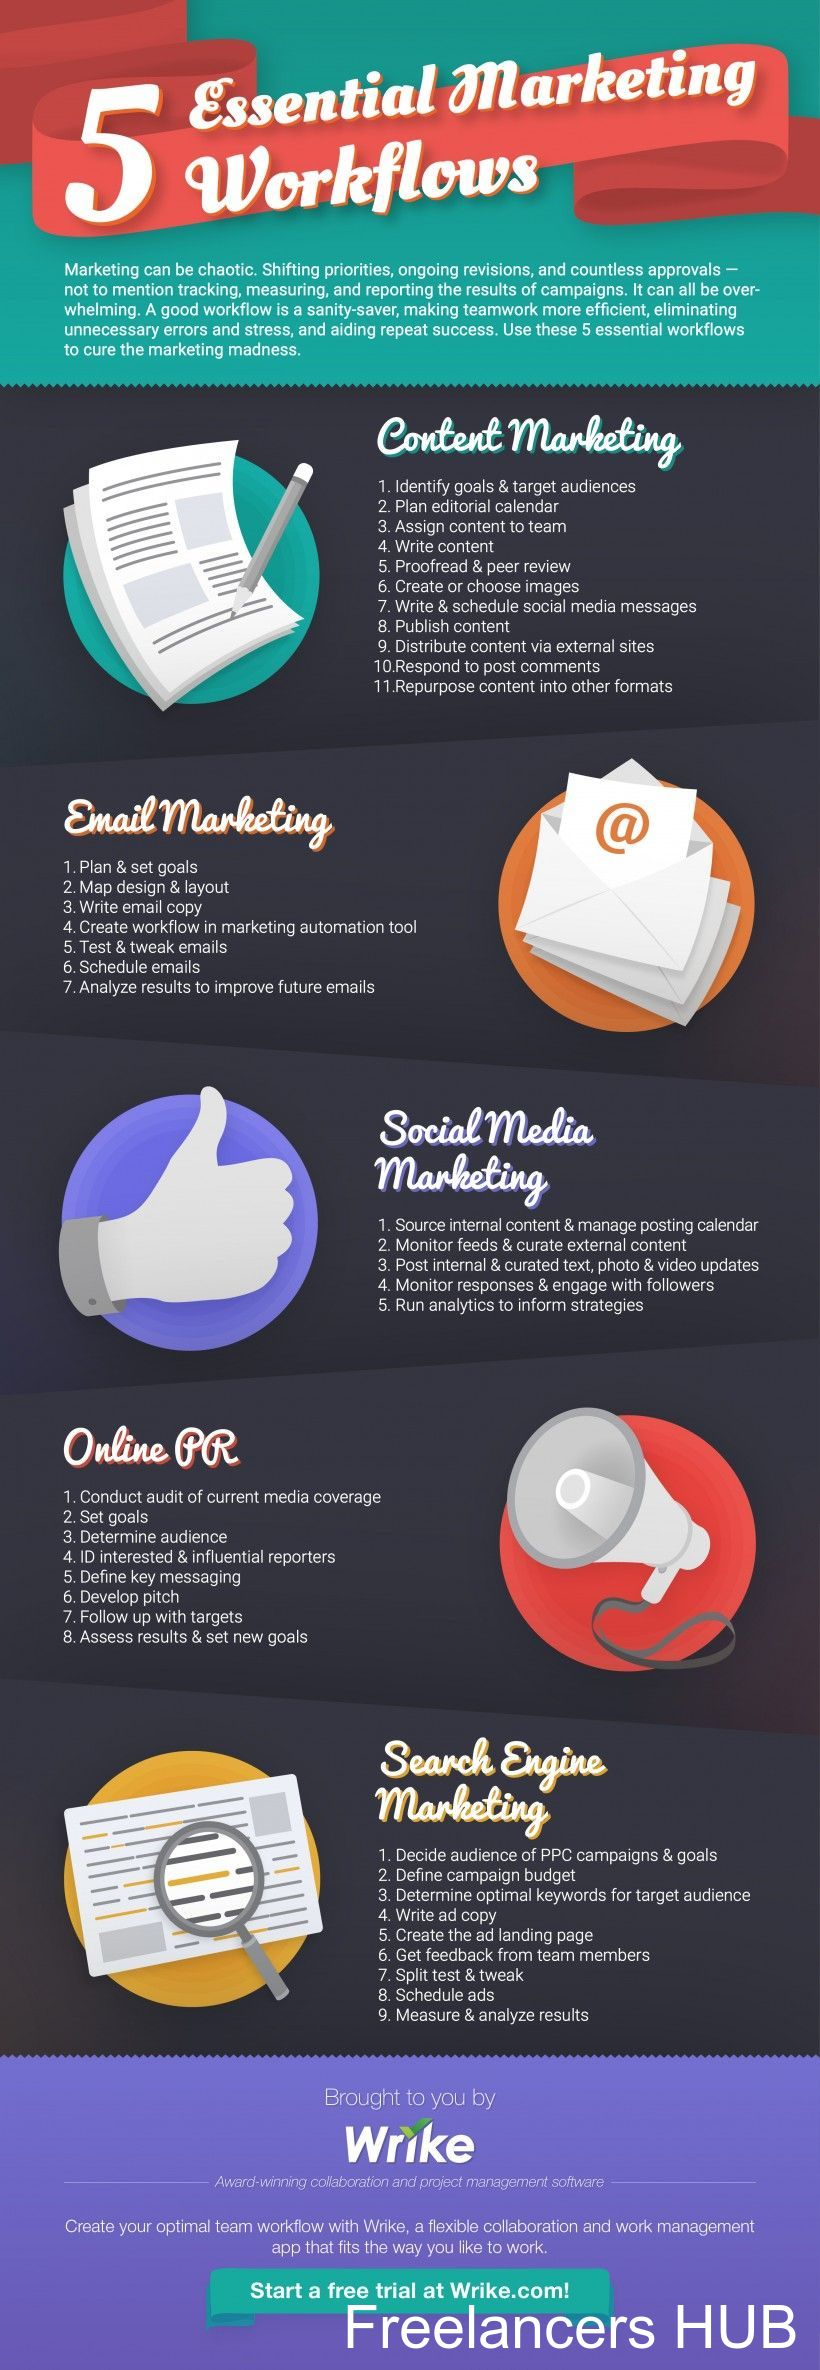 Content Marketing, Search Engine, Email, Social Media, Online PR: 5 Essential Digital Marketing Workflows - #infographic